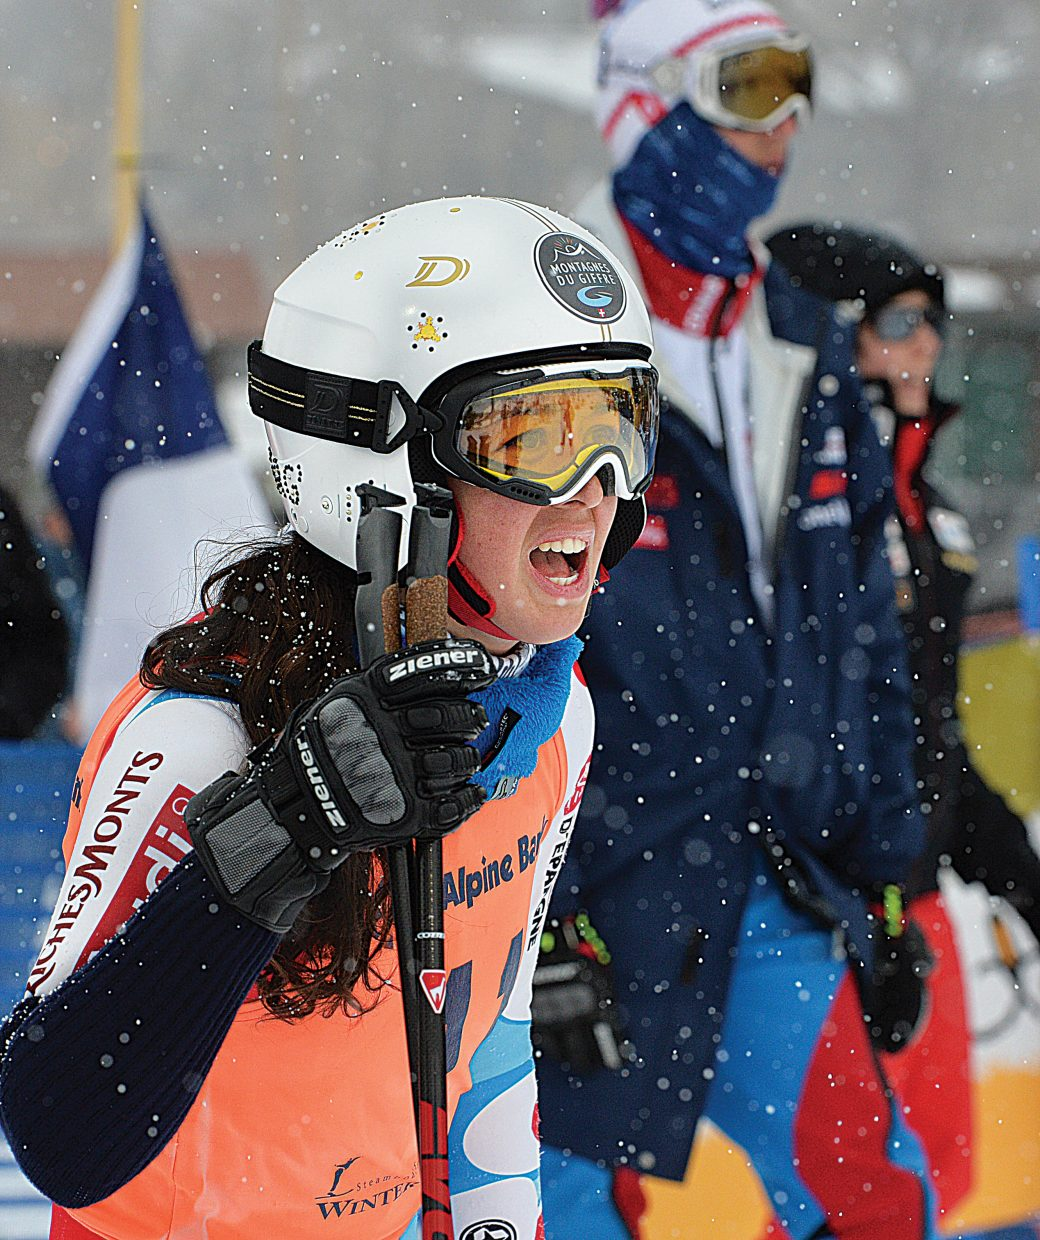 France's Argeline Tan Bouquet cheers as her teammate races against the Swiss team in the finals of the team event at the 2015 FIS Telemark World Championships in Steamboat Springs Wednesday. Her team lost to the Swiss by a score of 2-1.